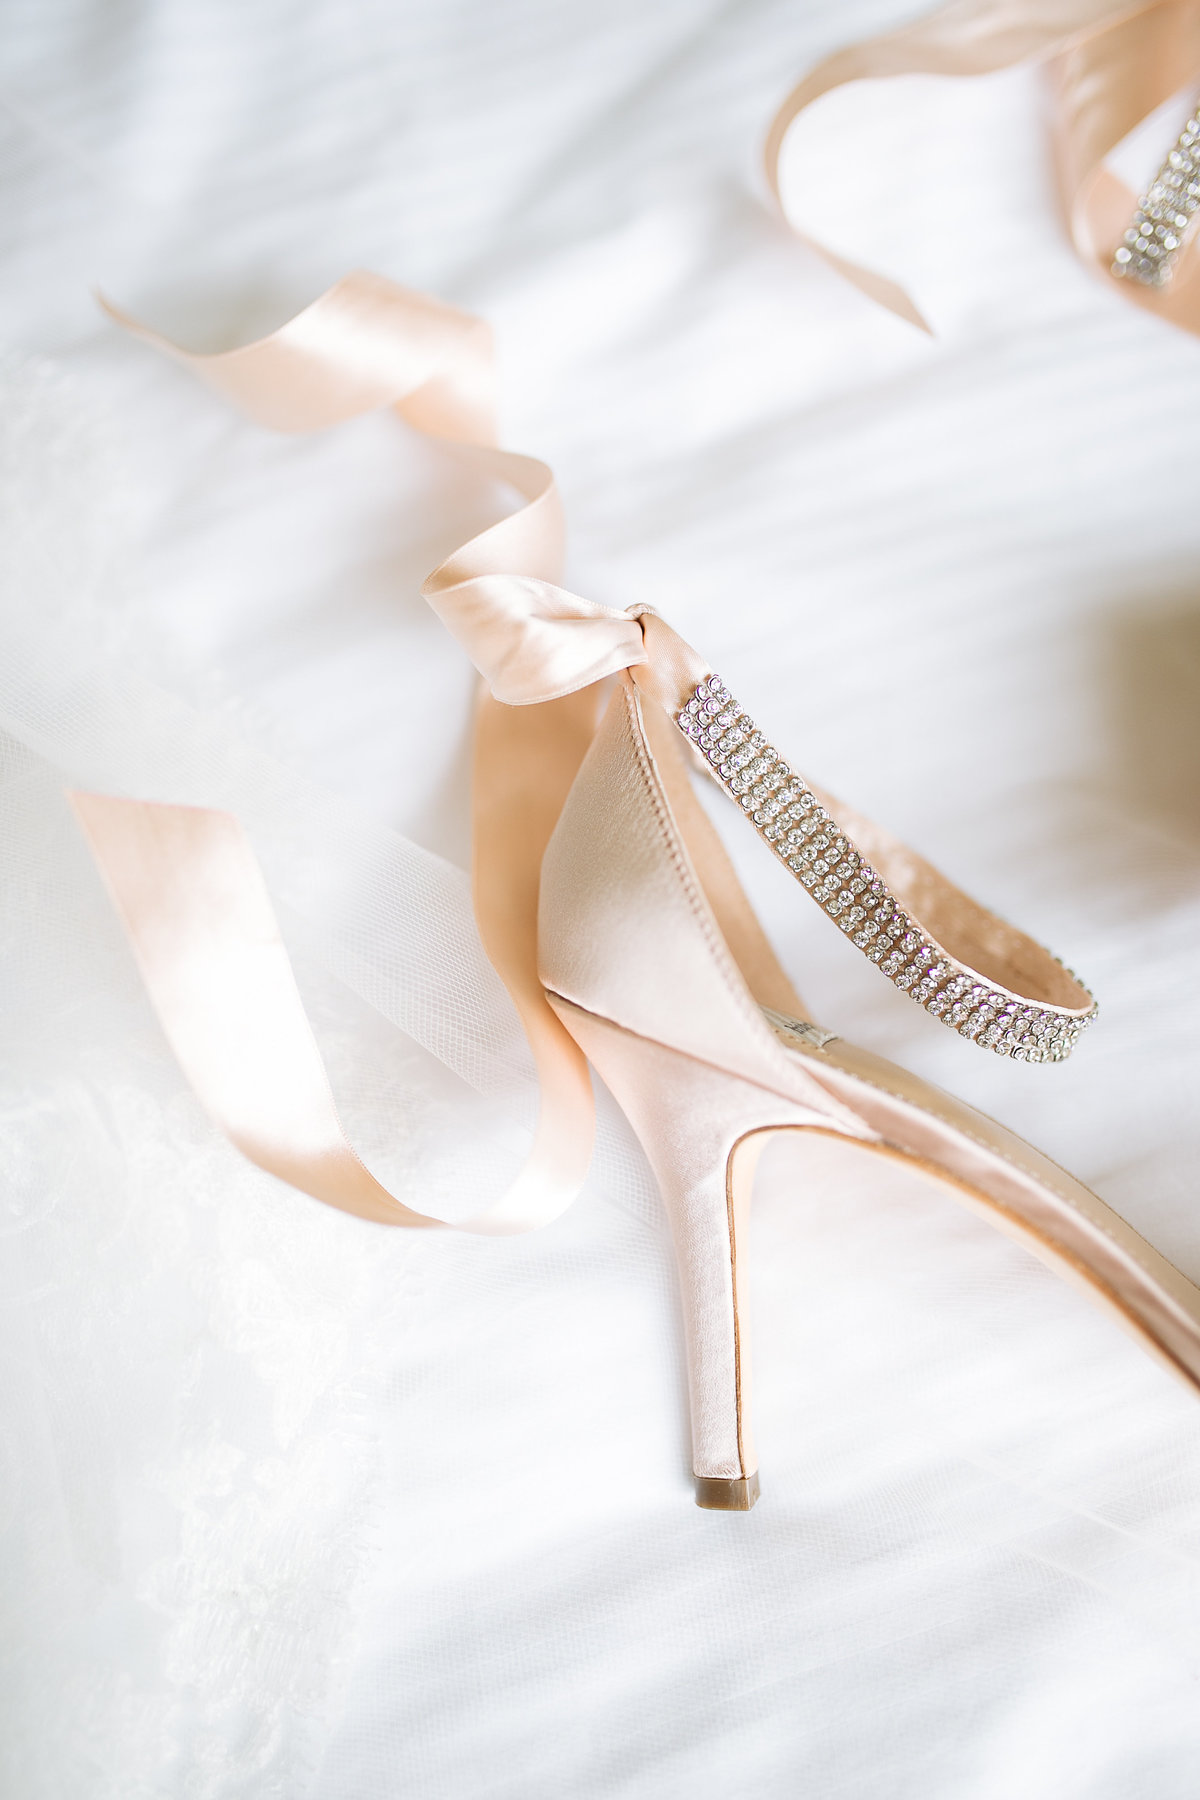 bridal shoes from bhldn worn at a houston wedding